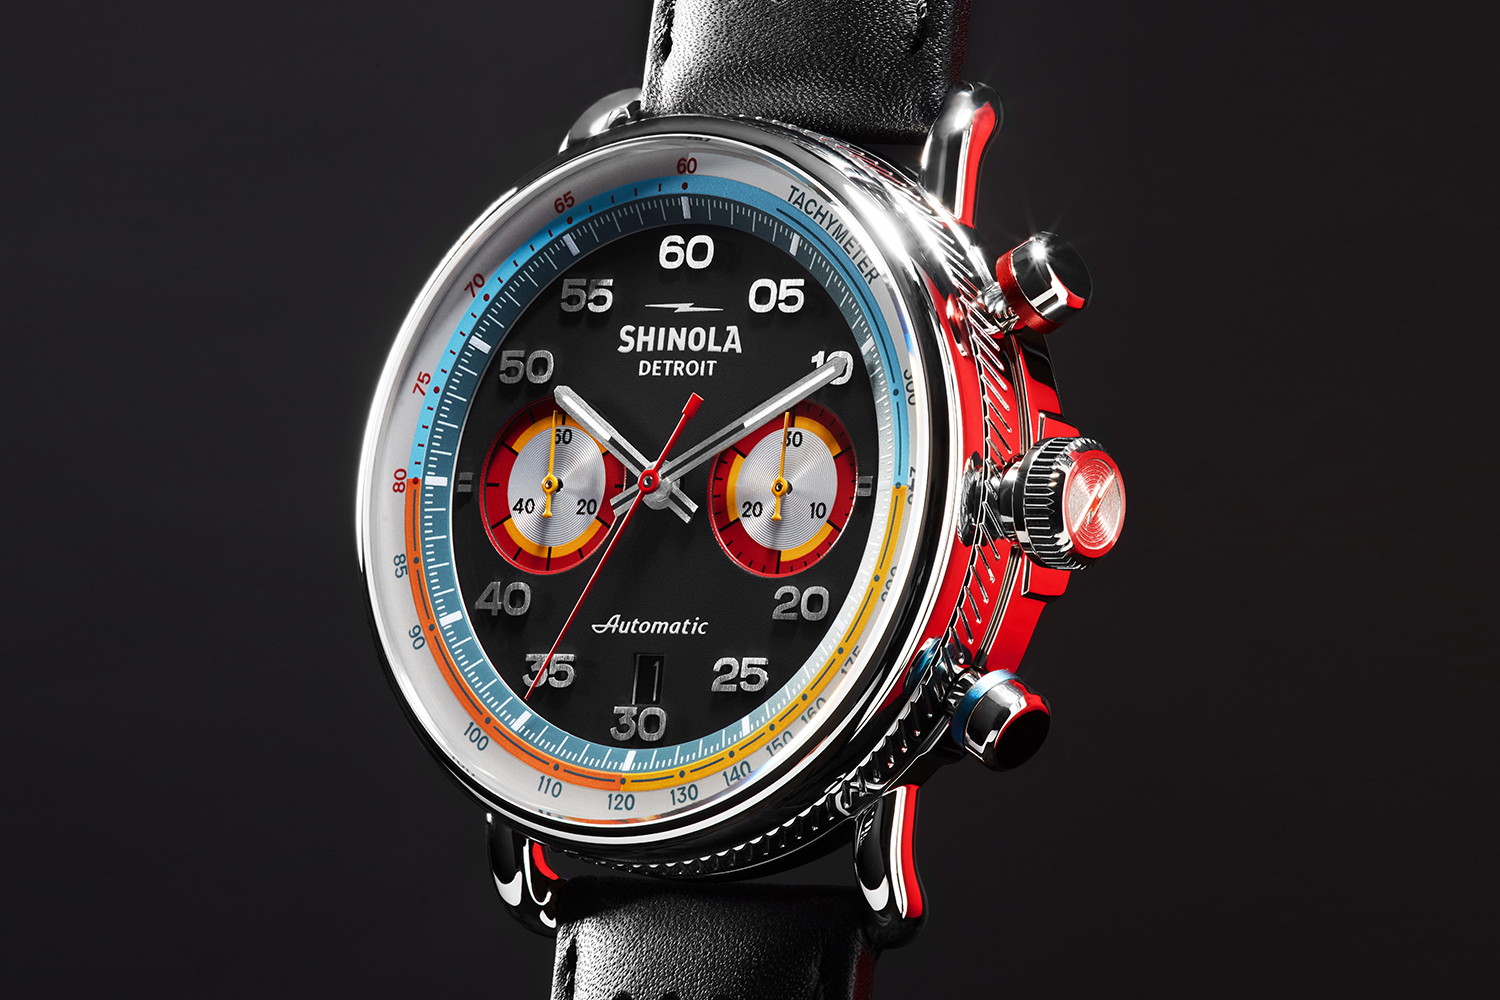 The Shinola Canfield Speedway, the watch brand's first automatic chronograph. The timepiece sold out in less than 24 hours.